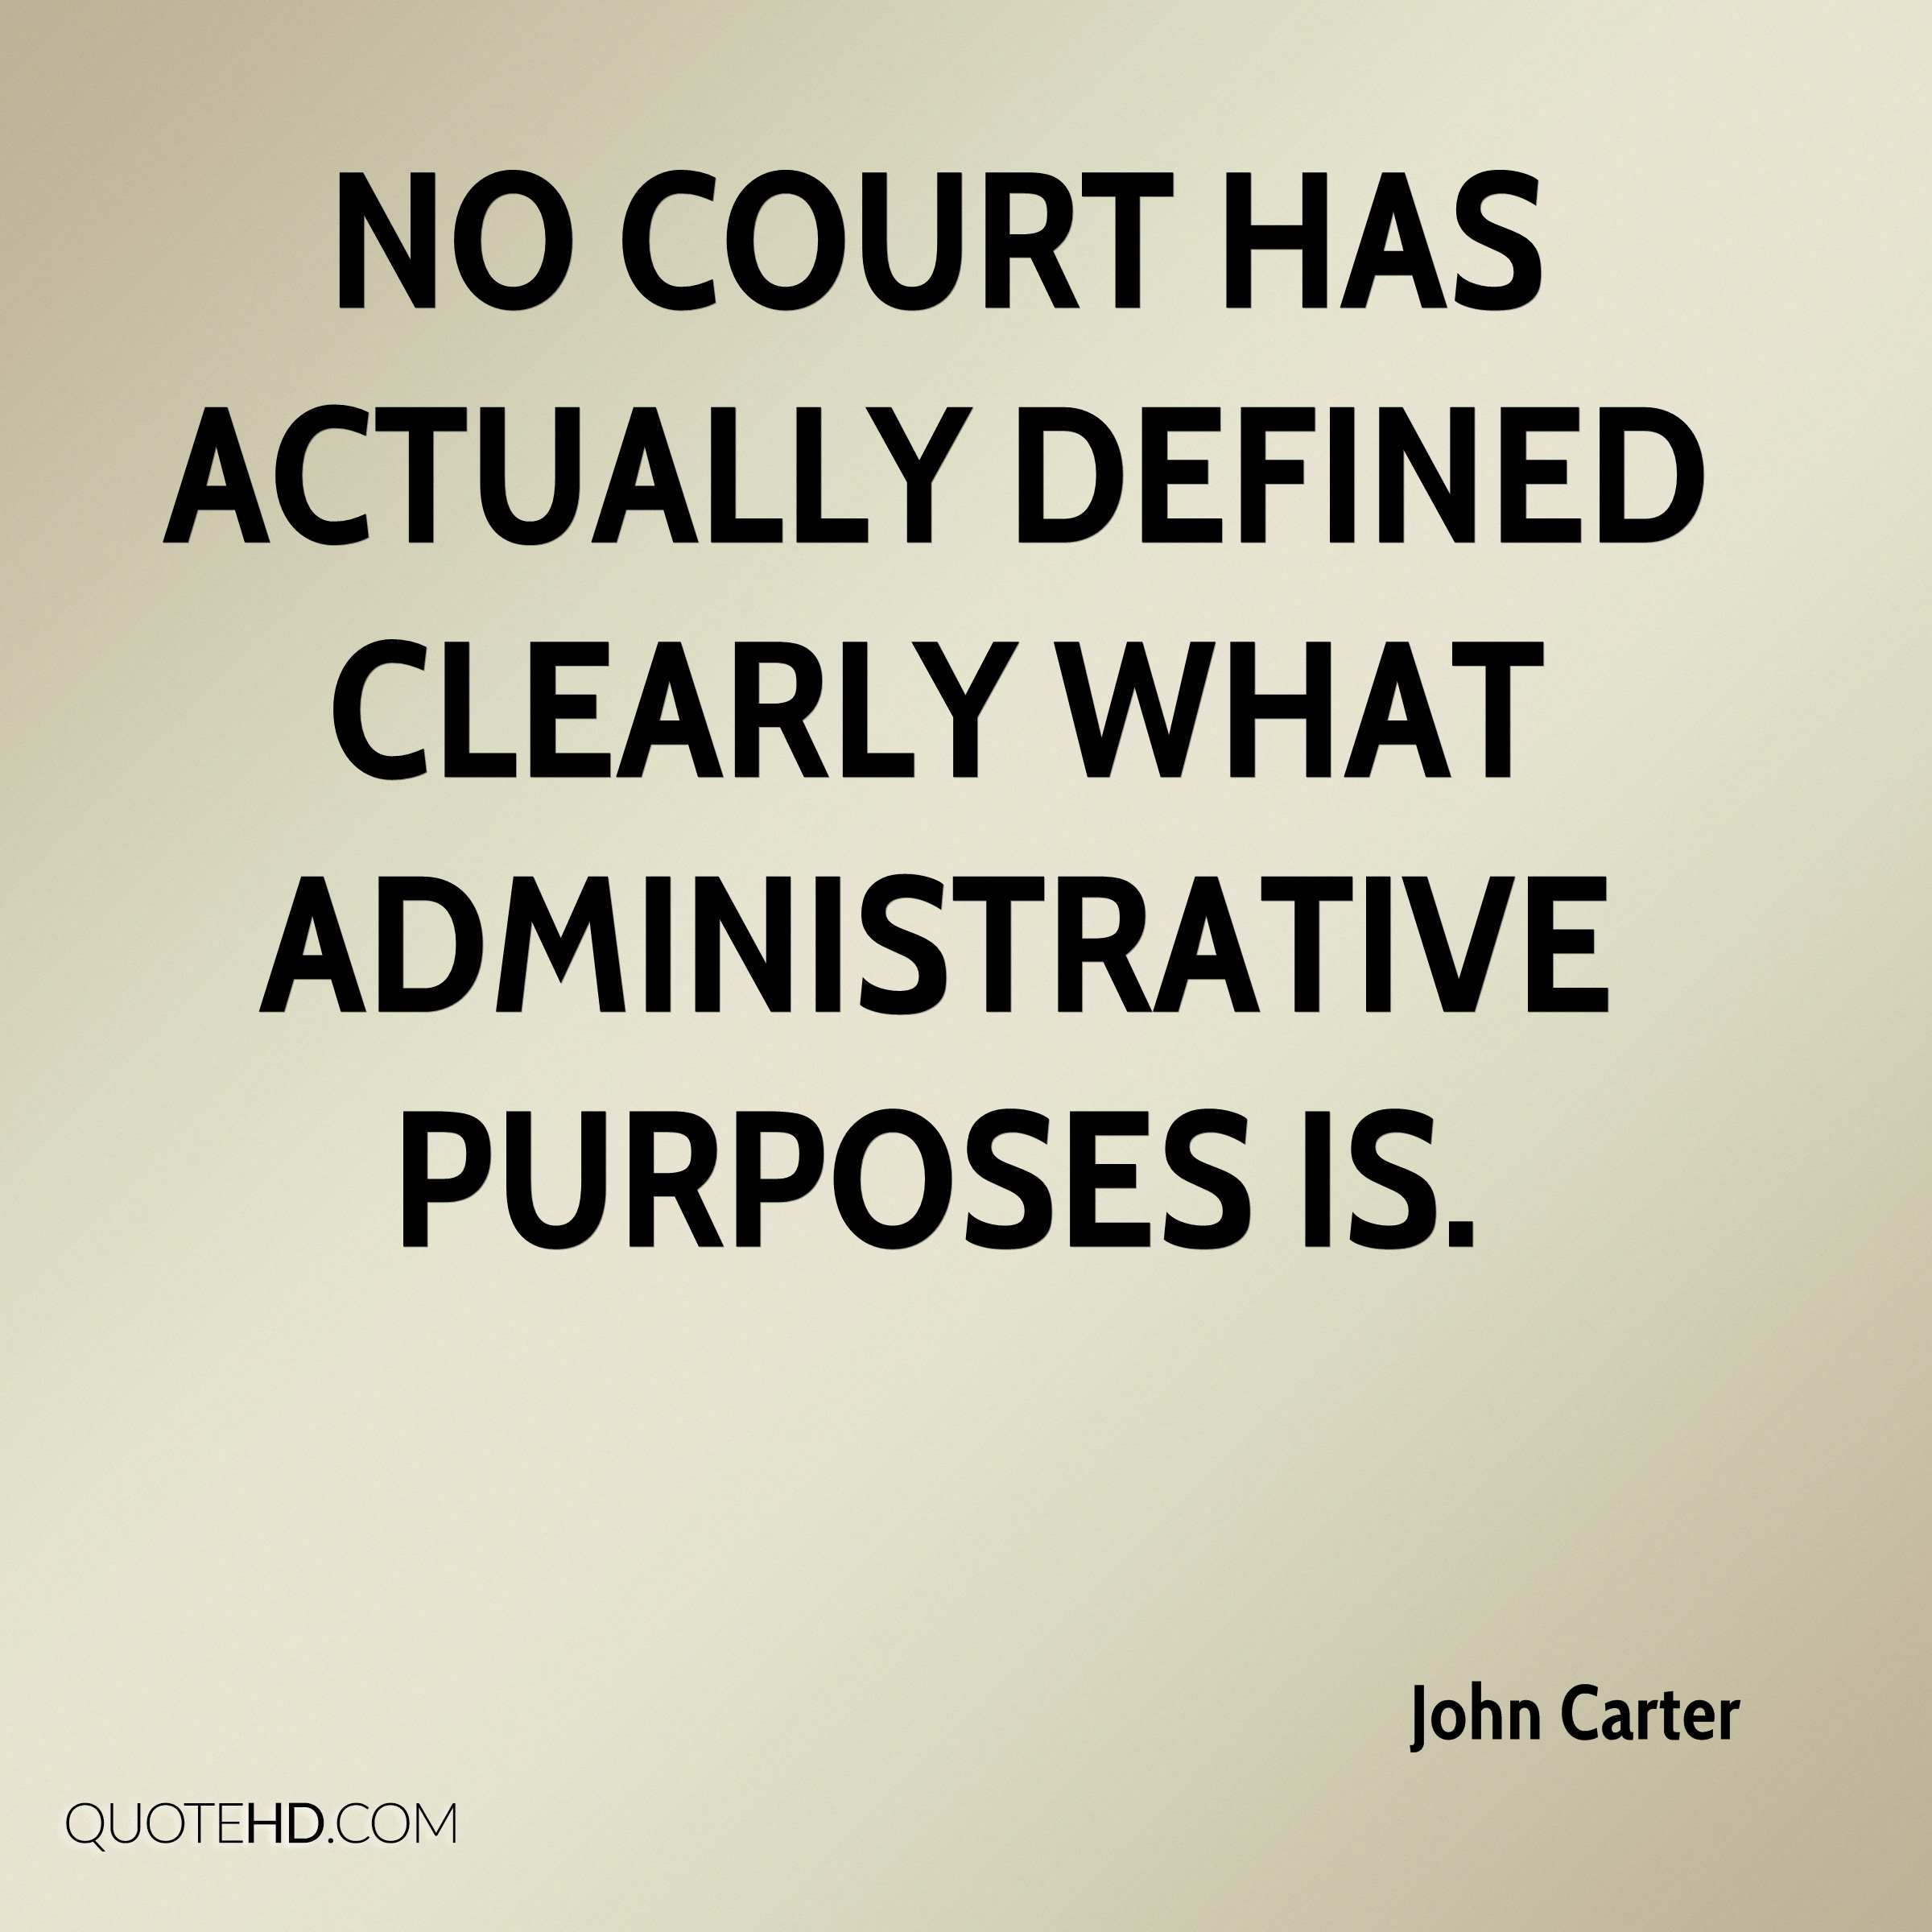 No court has actually defined clearly what administrative purposes is.